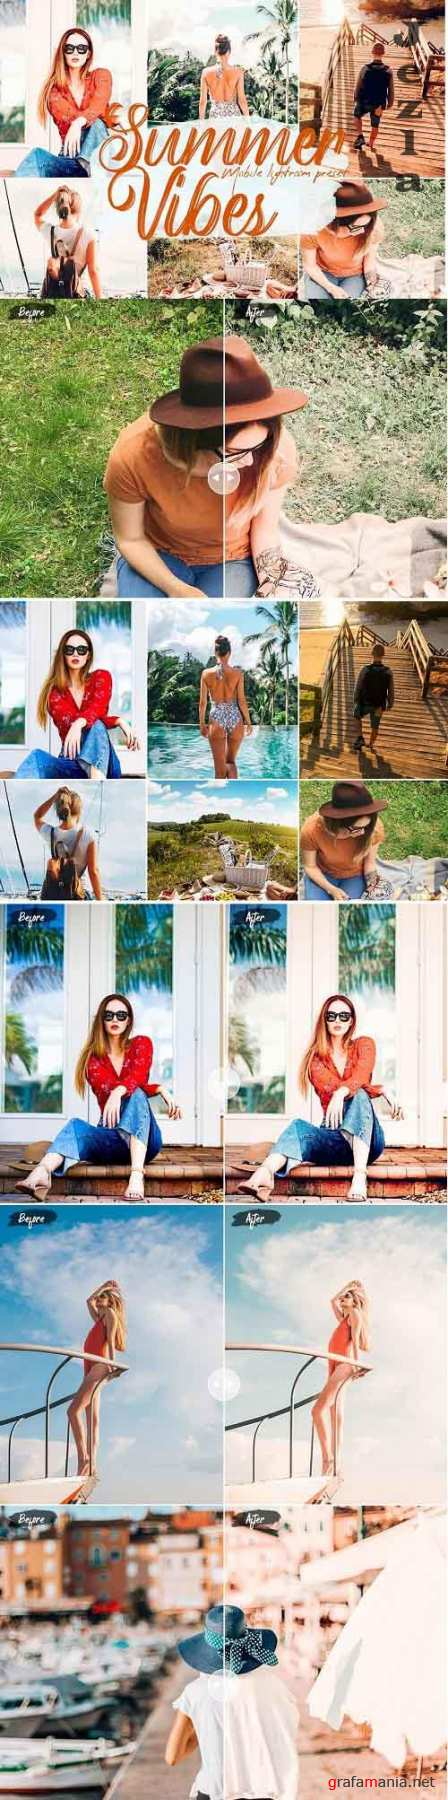 Summer Vibes Lightroom Presets - 5749693